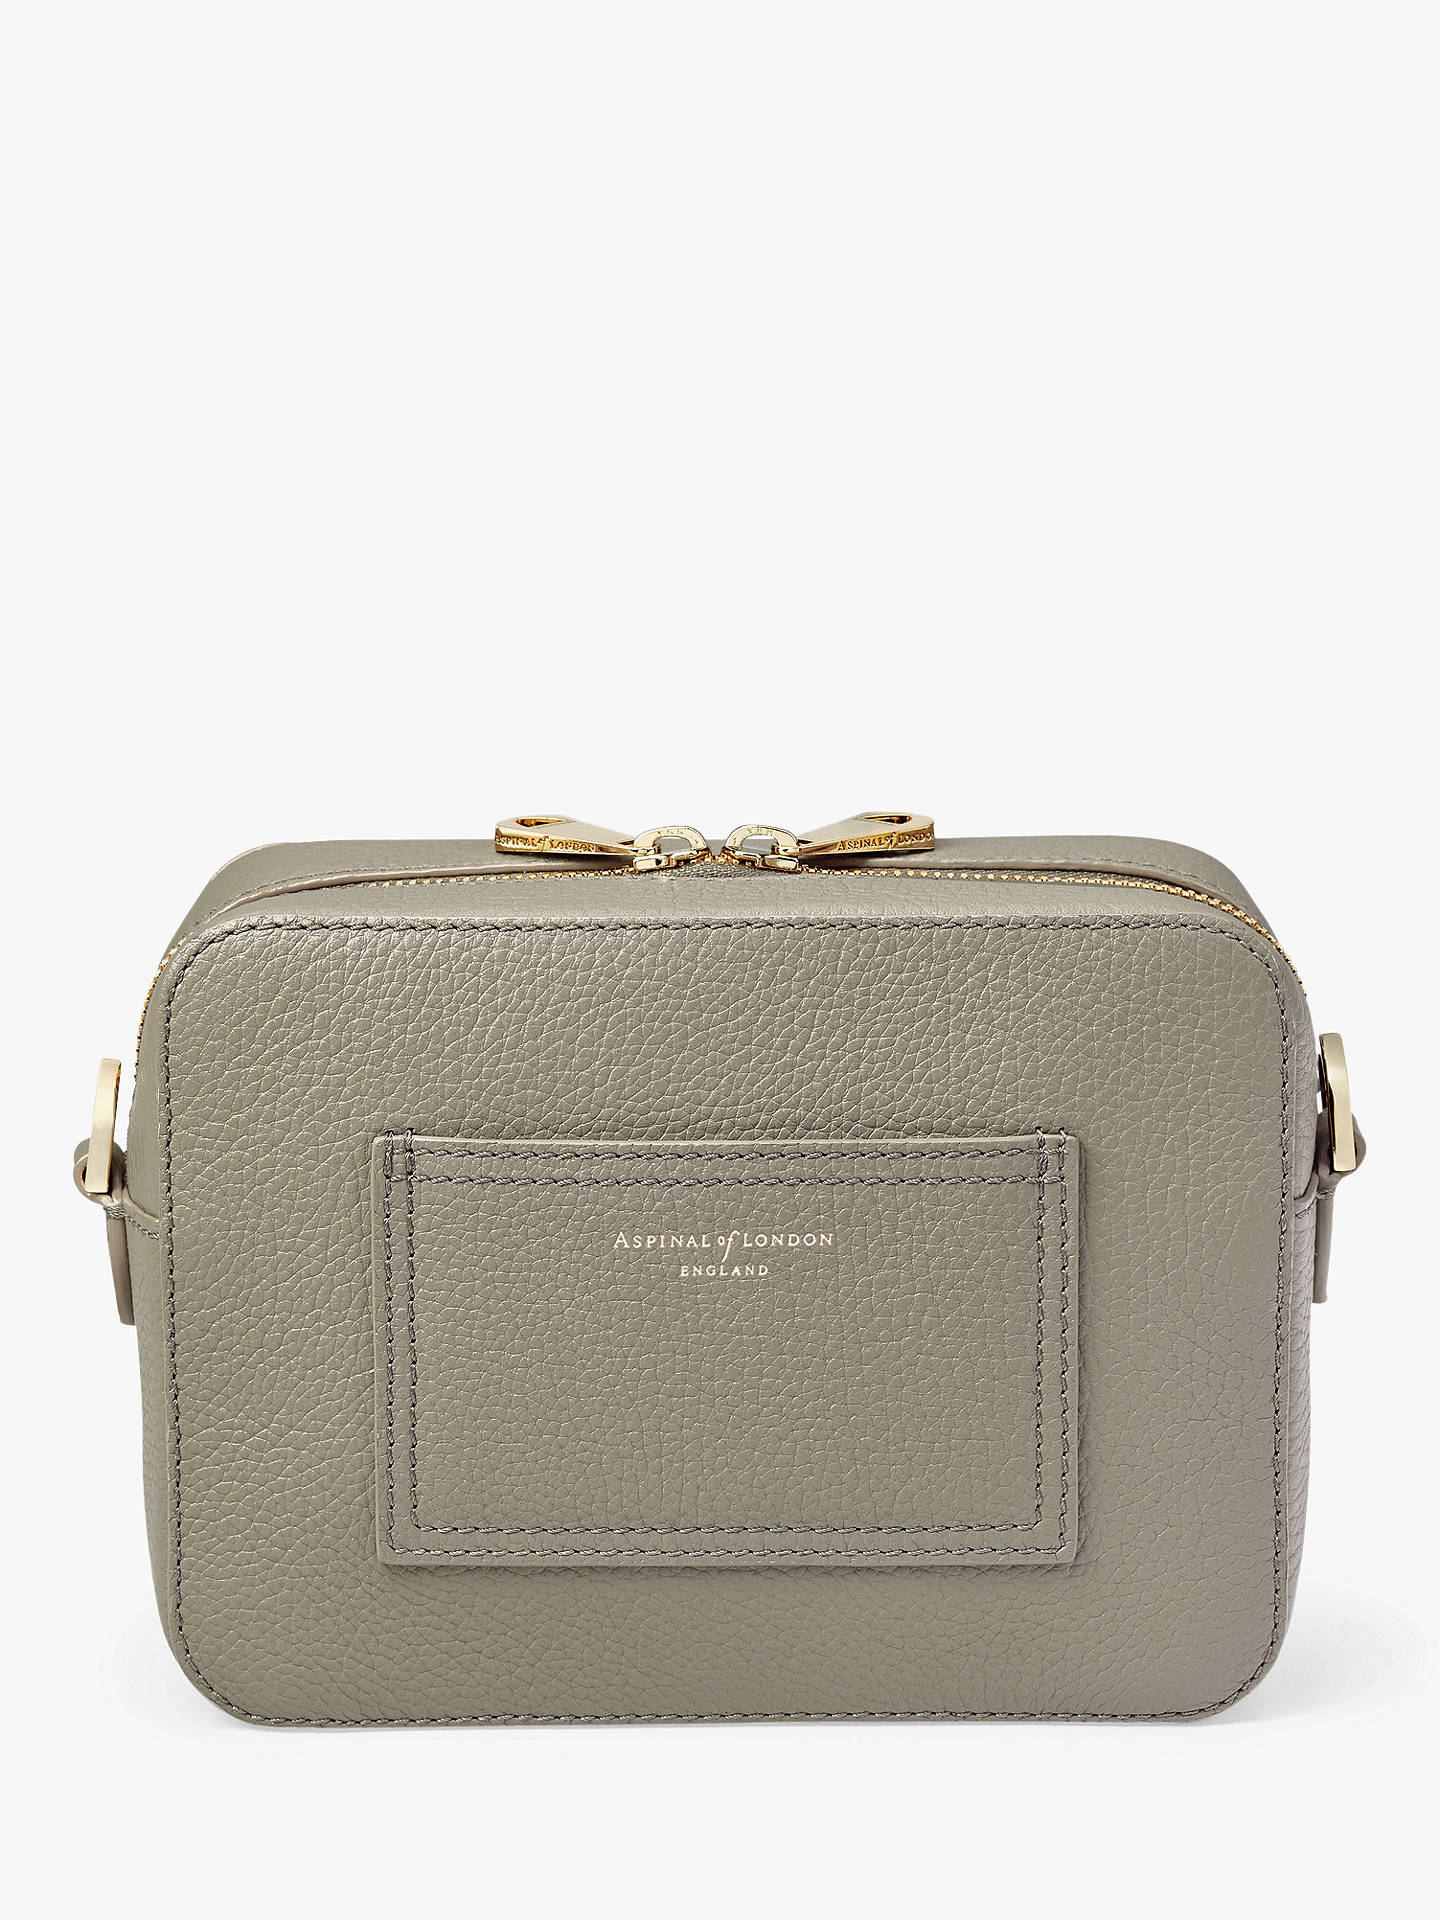 BuyAspinal of London Pebbled Leather Camera Cross Body Bag, Warm Grey Online at johnlewis.com